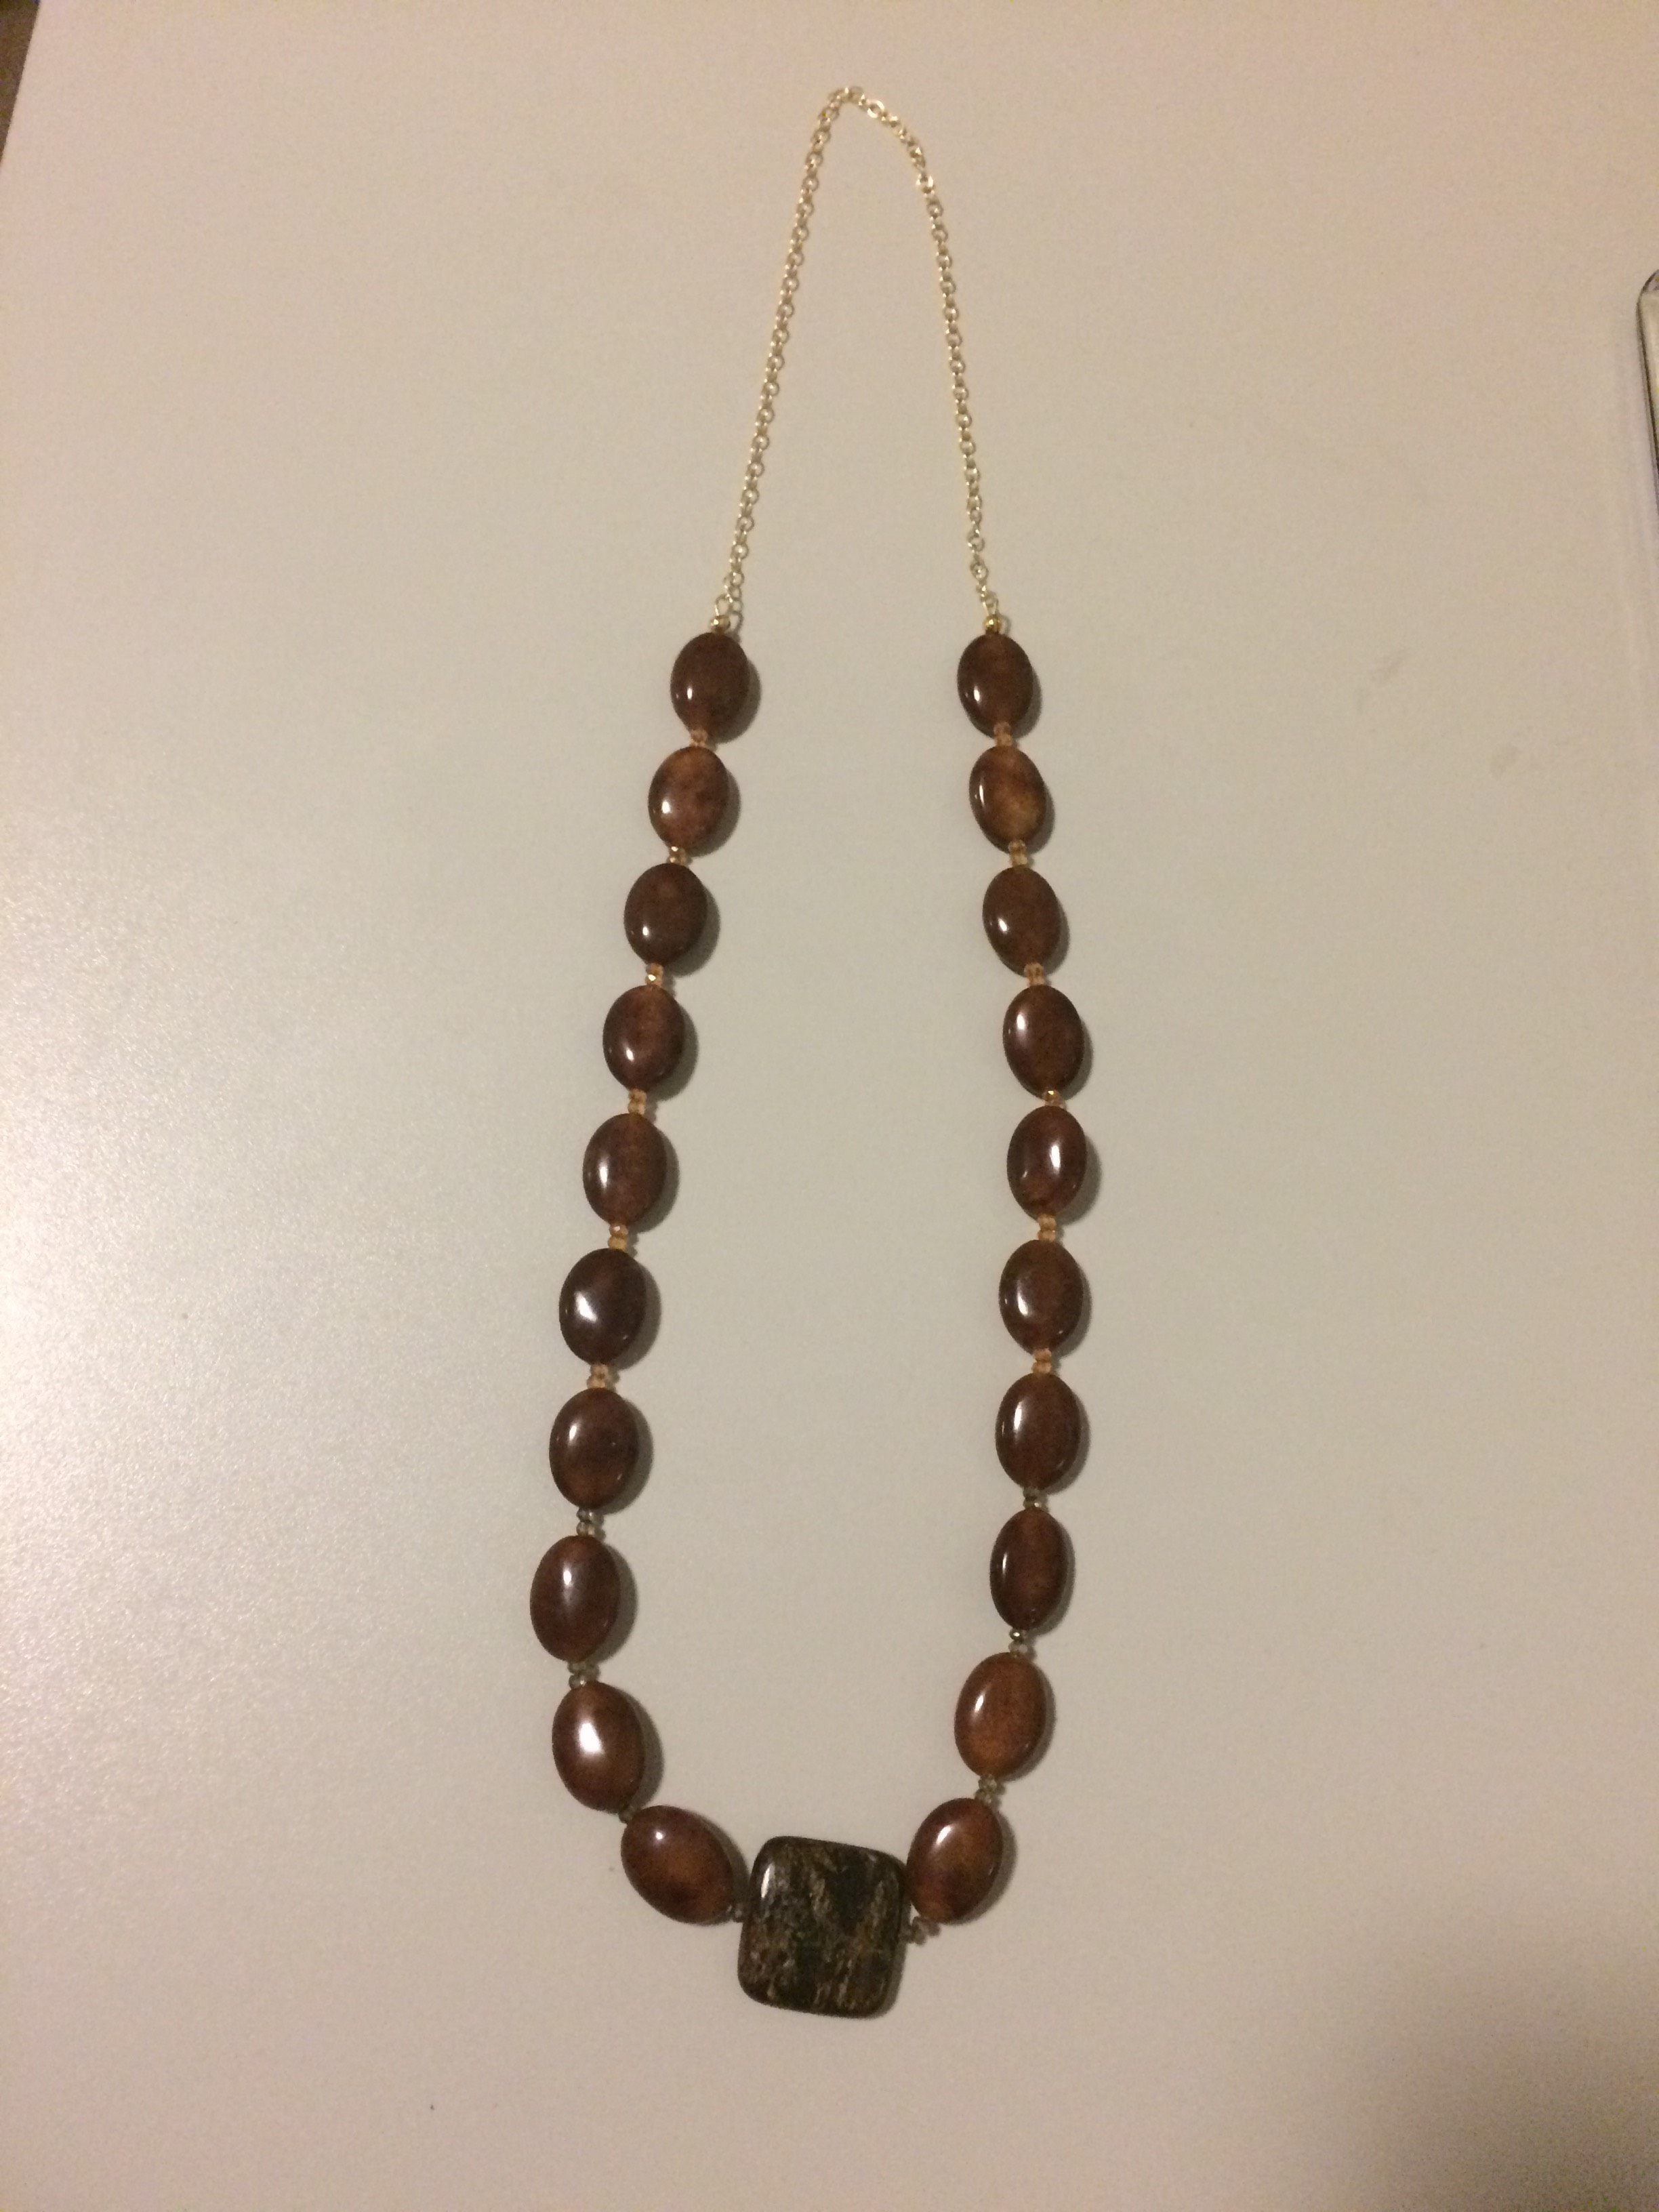 Oild Jade (Brown), Heated Quartz (Brown and Green) Necklace with Gold Filled Chain/Findings